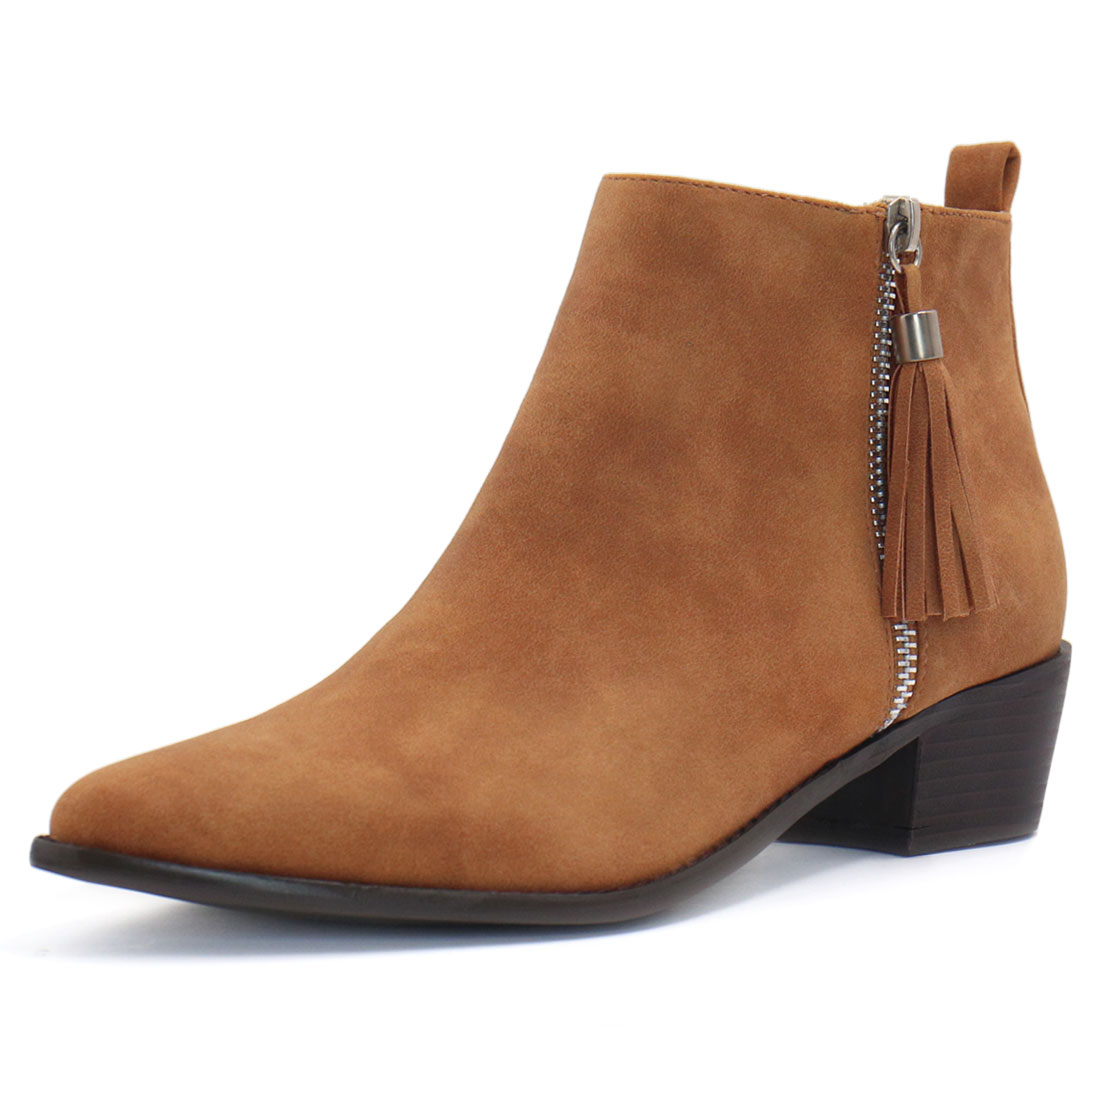 Unique Bargains Women's Pointed Toe Tassel Zippered Stacked Heel Ankle Boots Brown (Size 10.5)